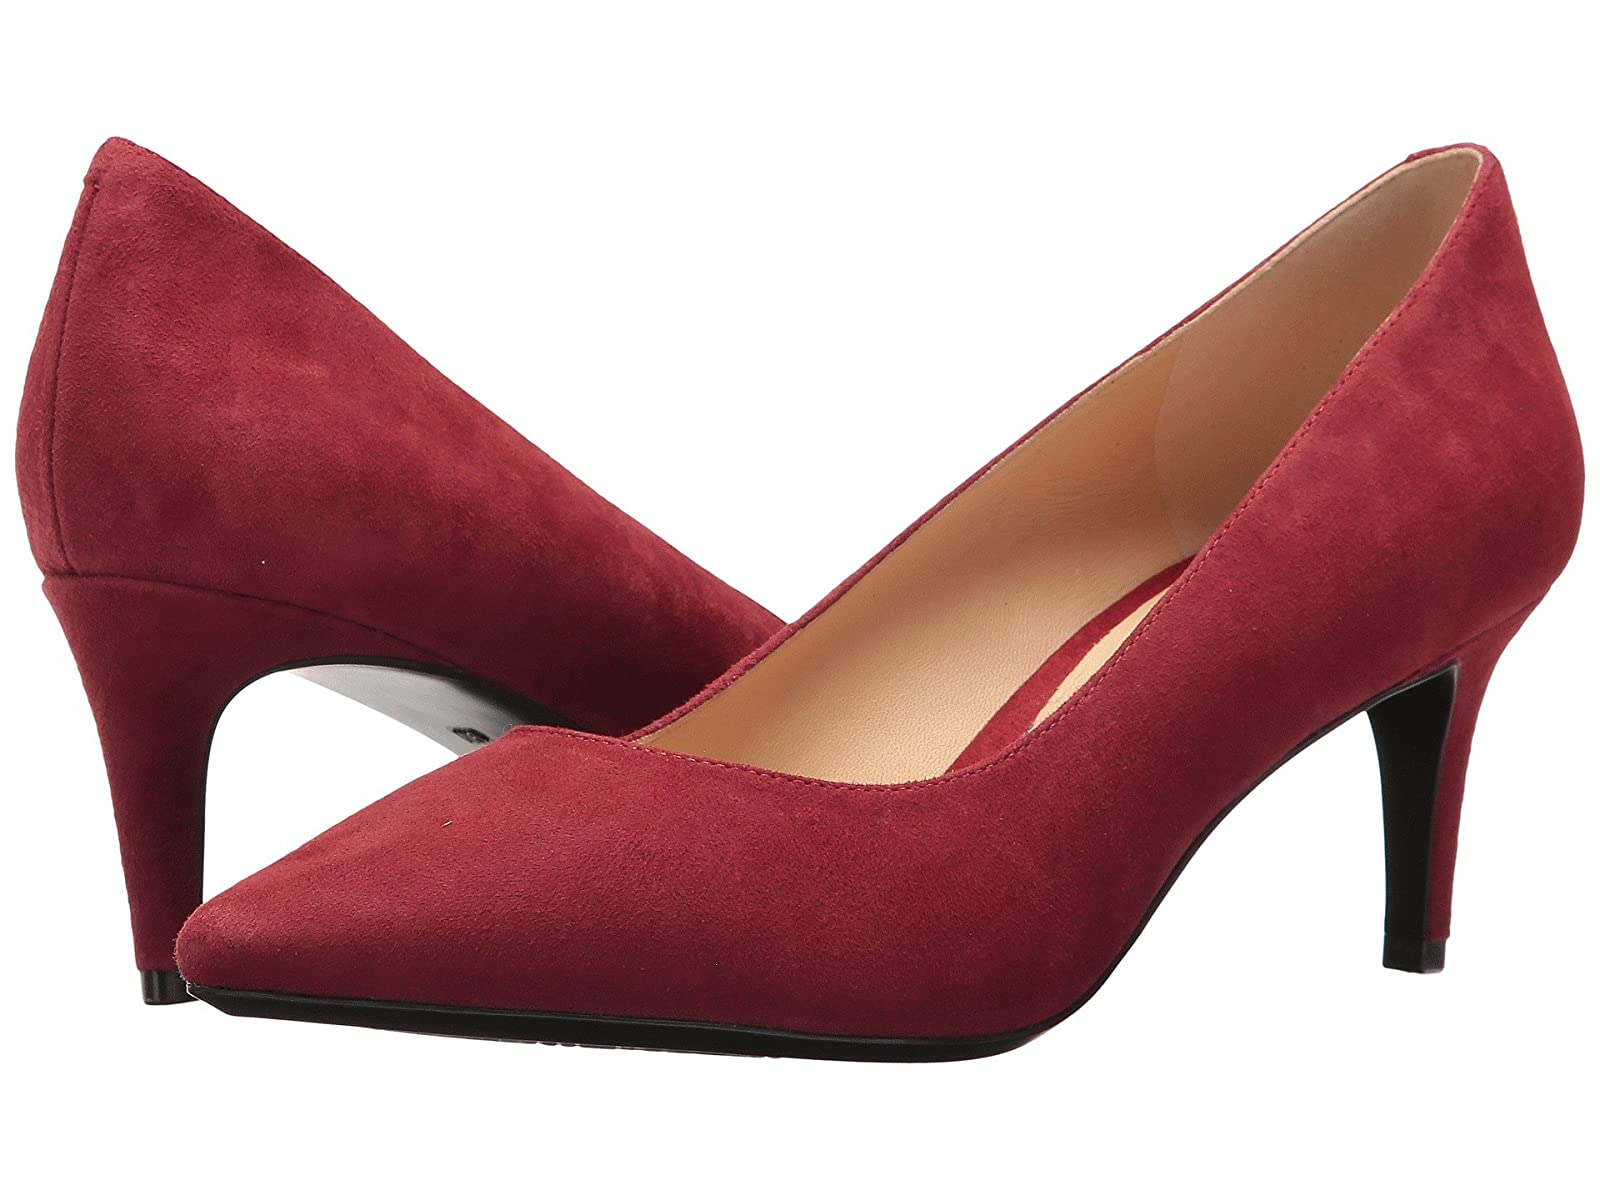 Nine West Soho9x9Cheap and distinctive eye-catching shoes